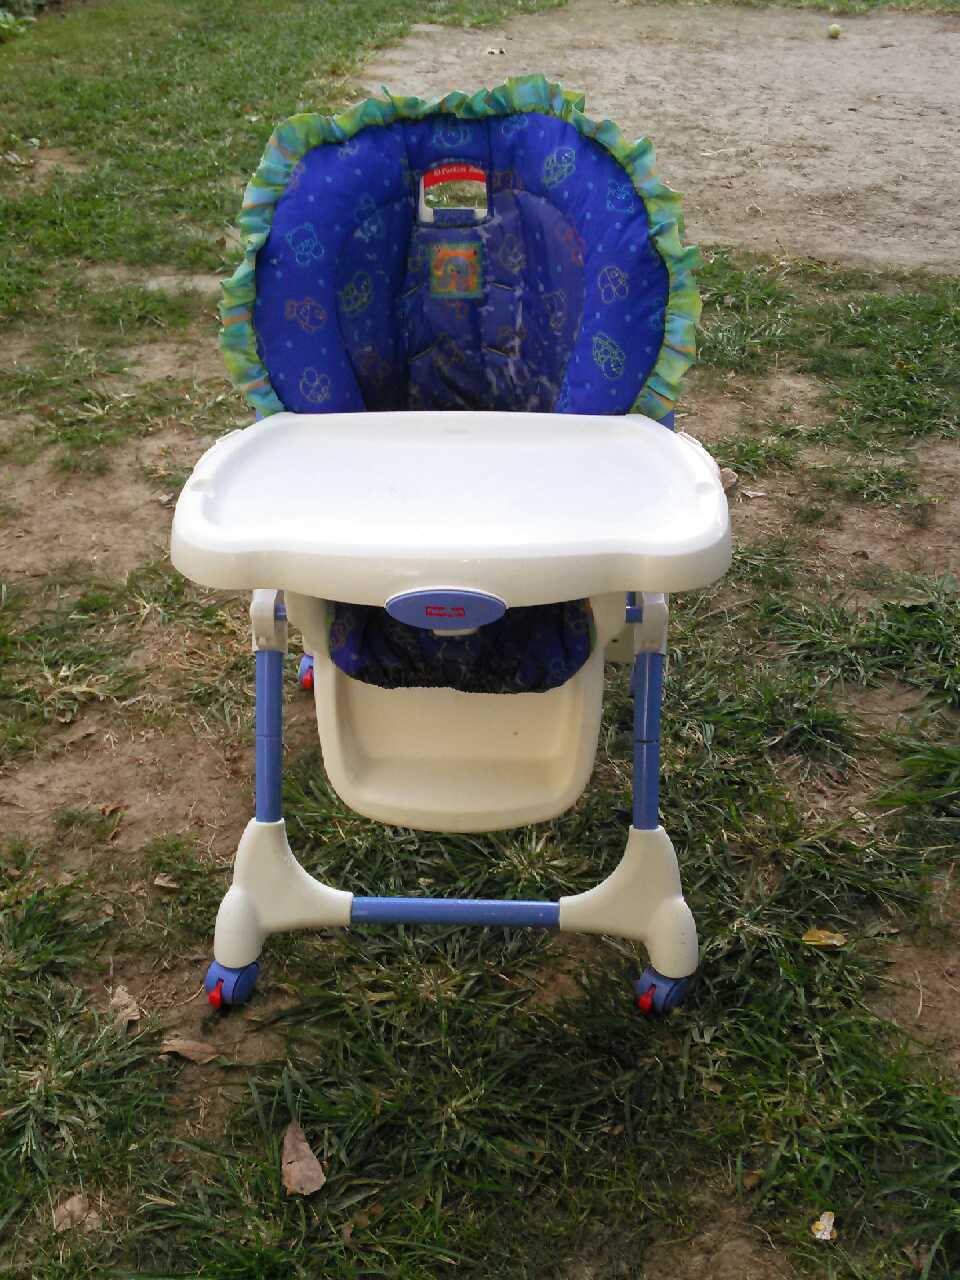 rocking chair crib combo accessories for back pain used stuff sale in philadelphia, pa - letgo